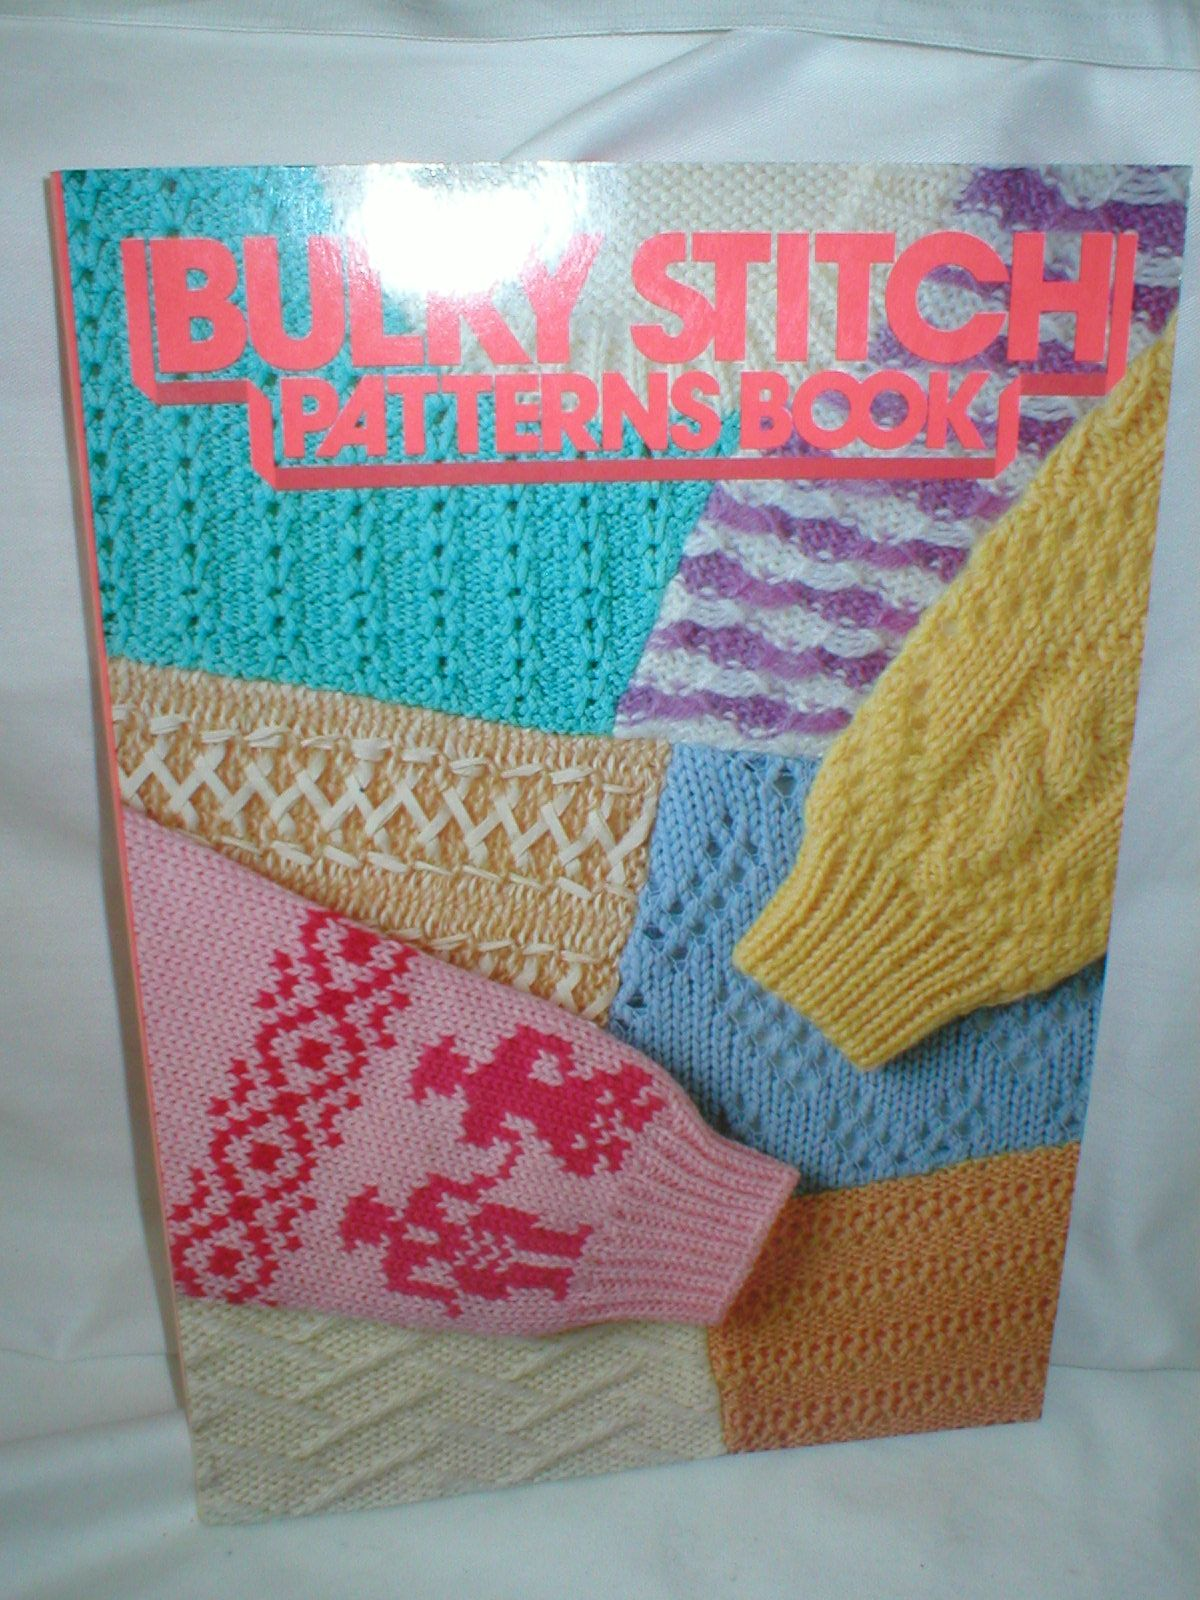 Bulky Stitch Patterns Book for Brother Chunky Knitting Machine B459